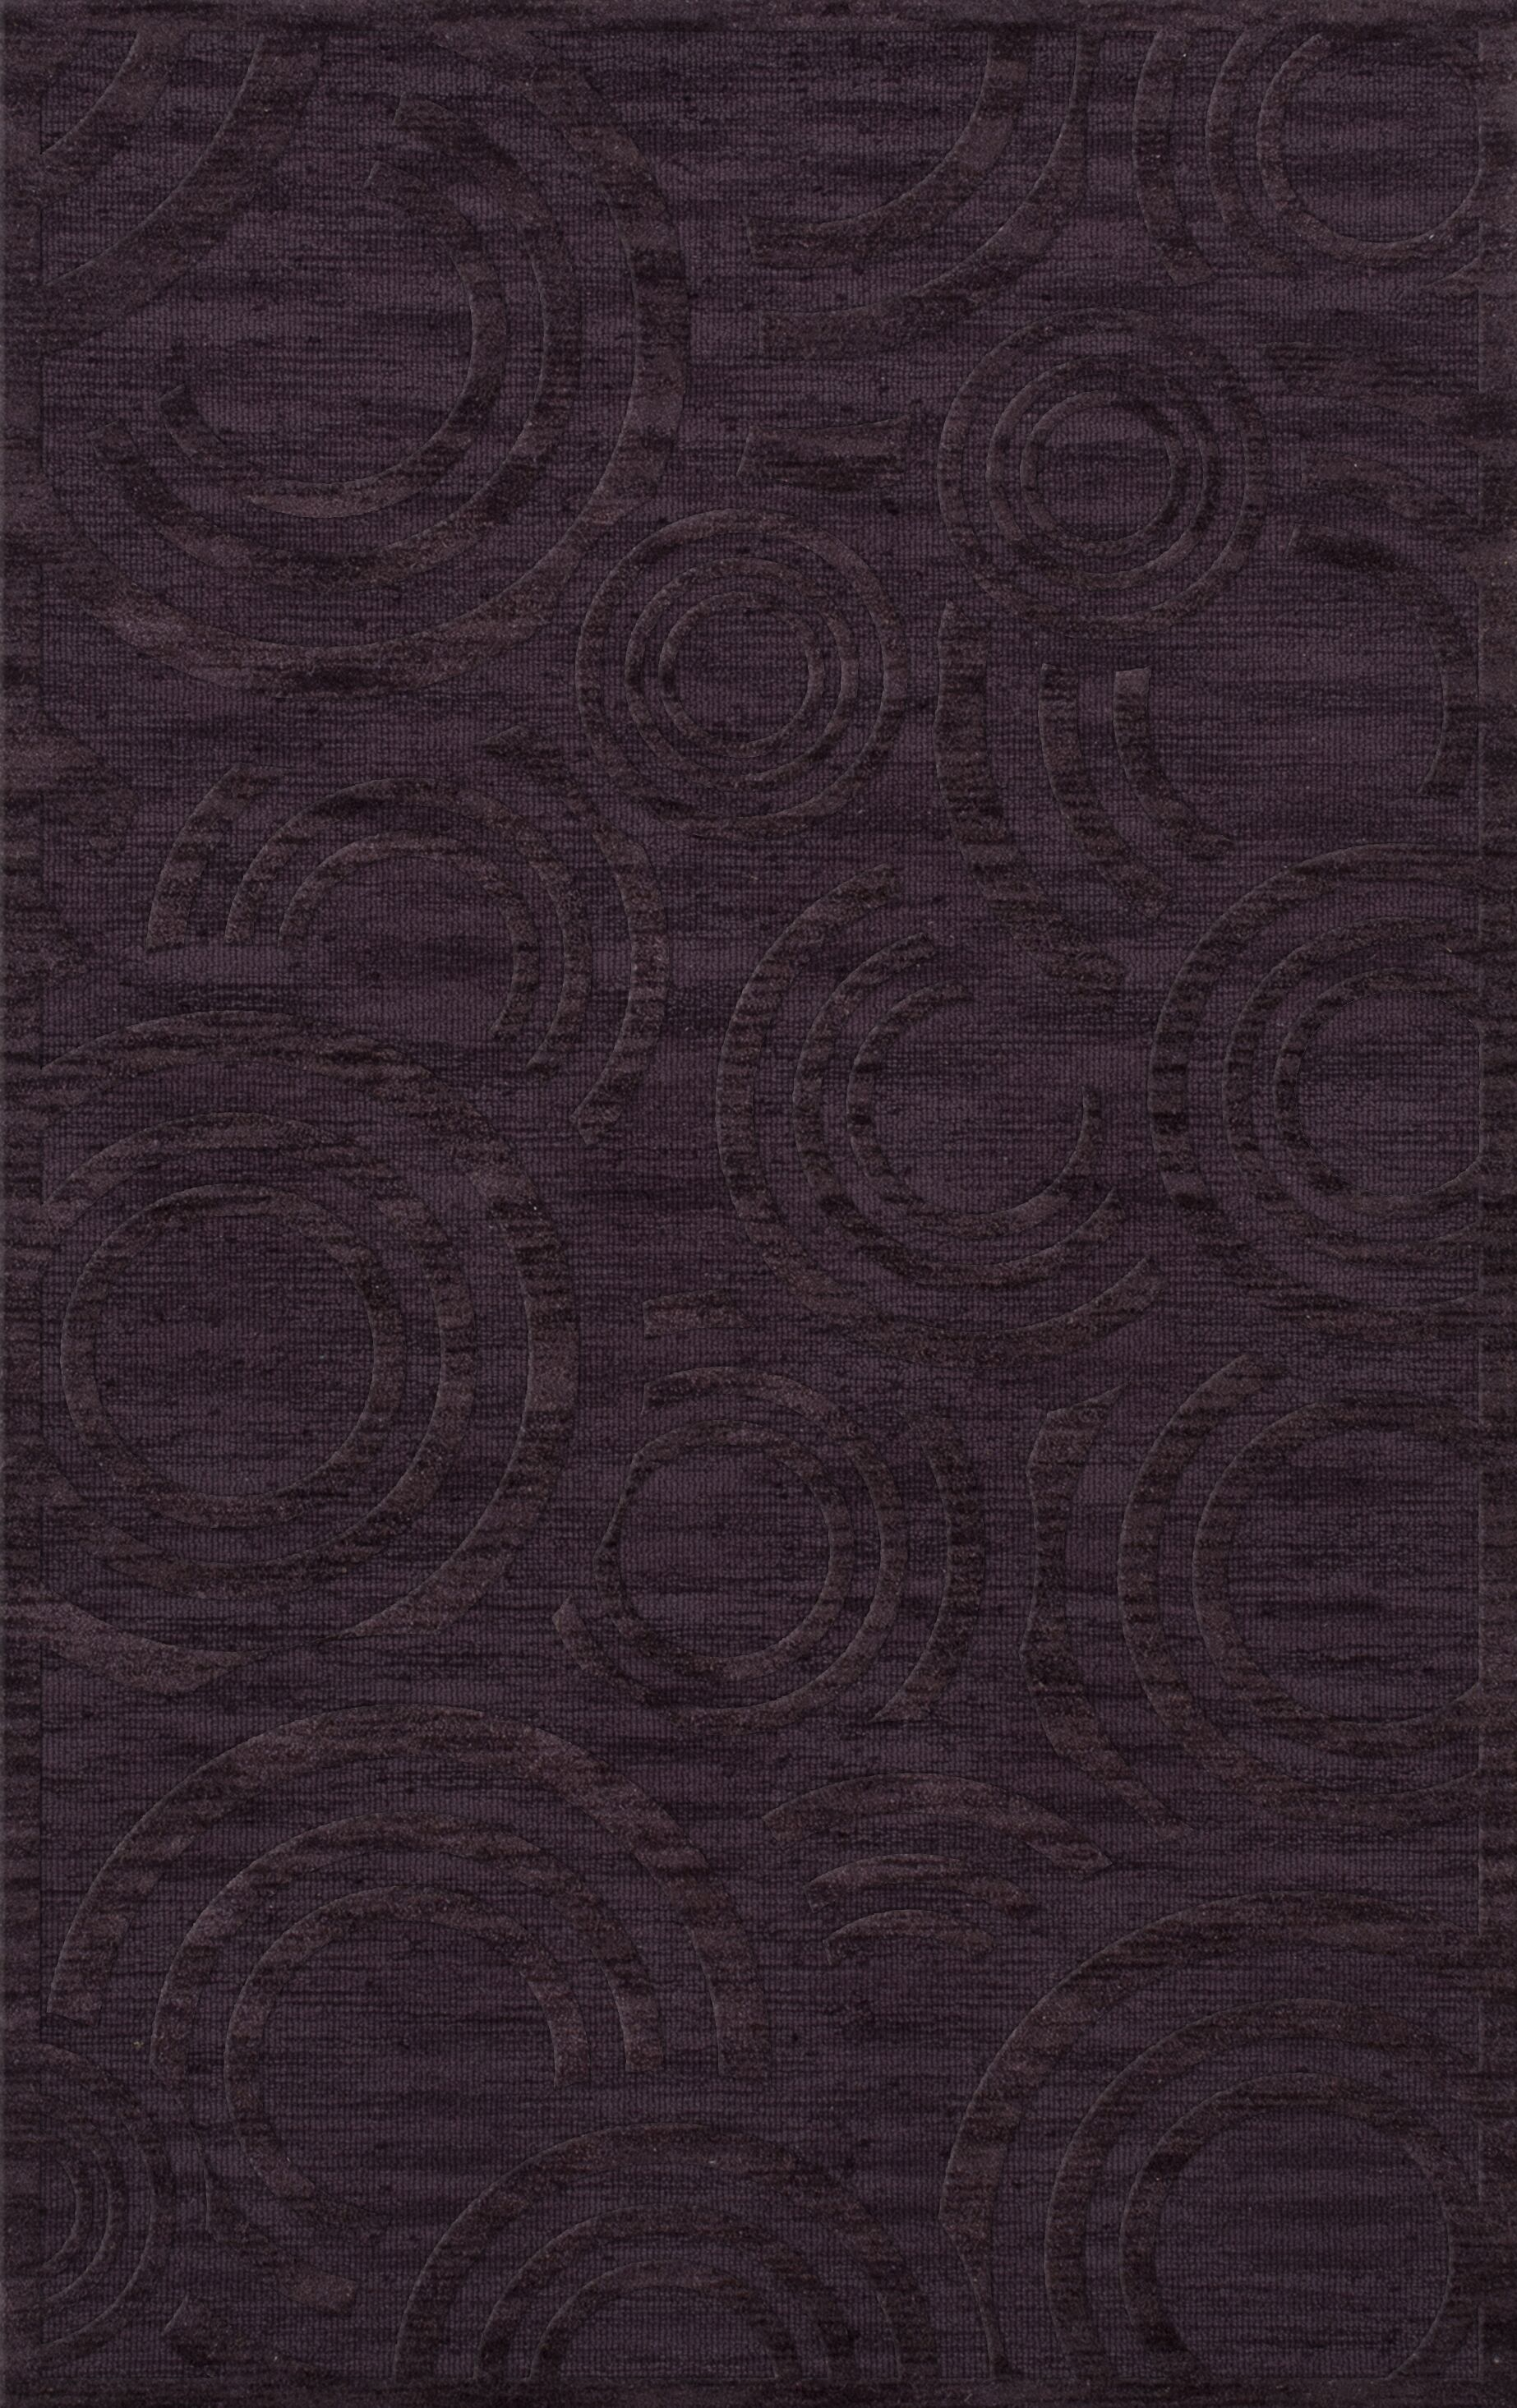 Dover Tufted Wool Grape Ice Area Rug Rug Size: Rectangle 12' x 15'